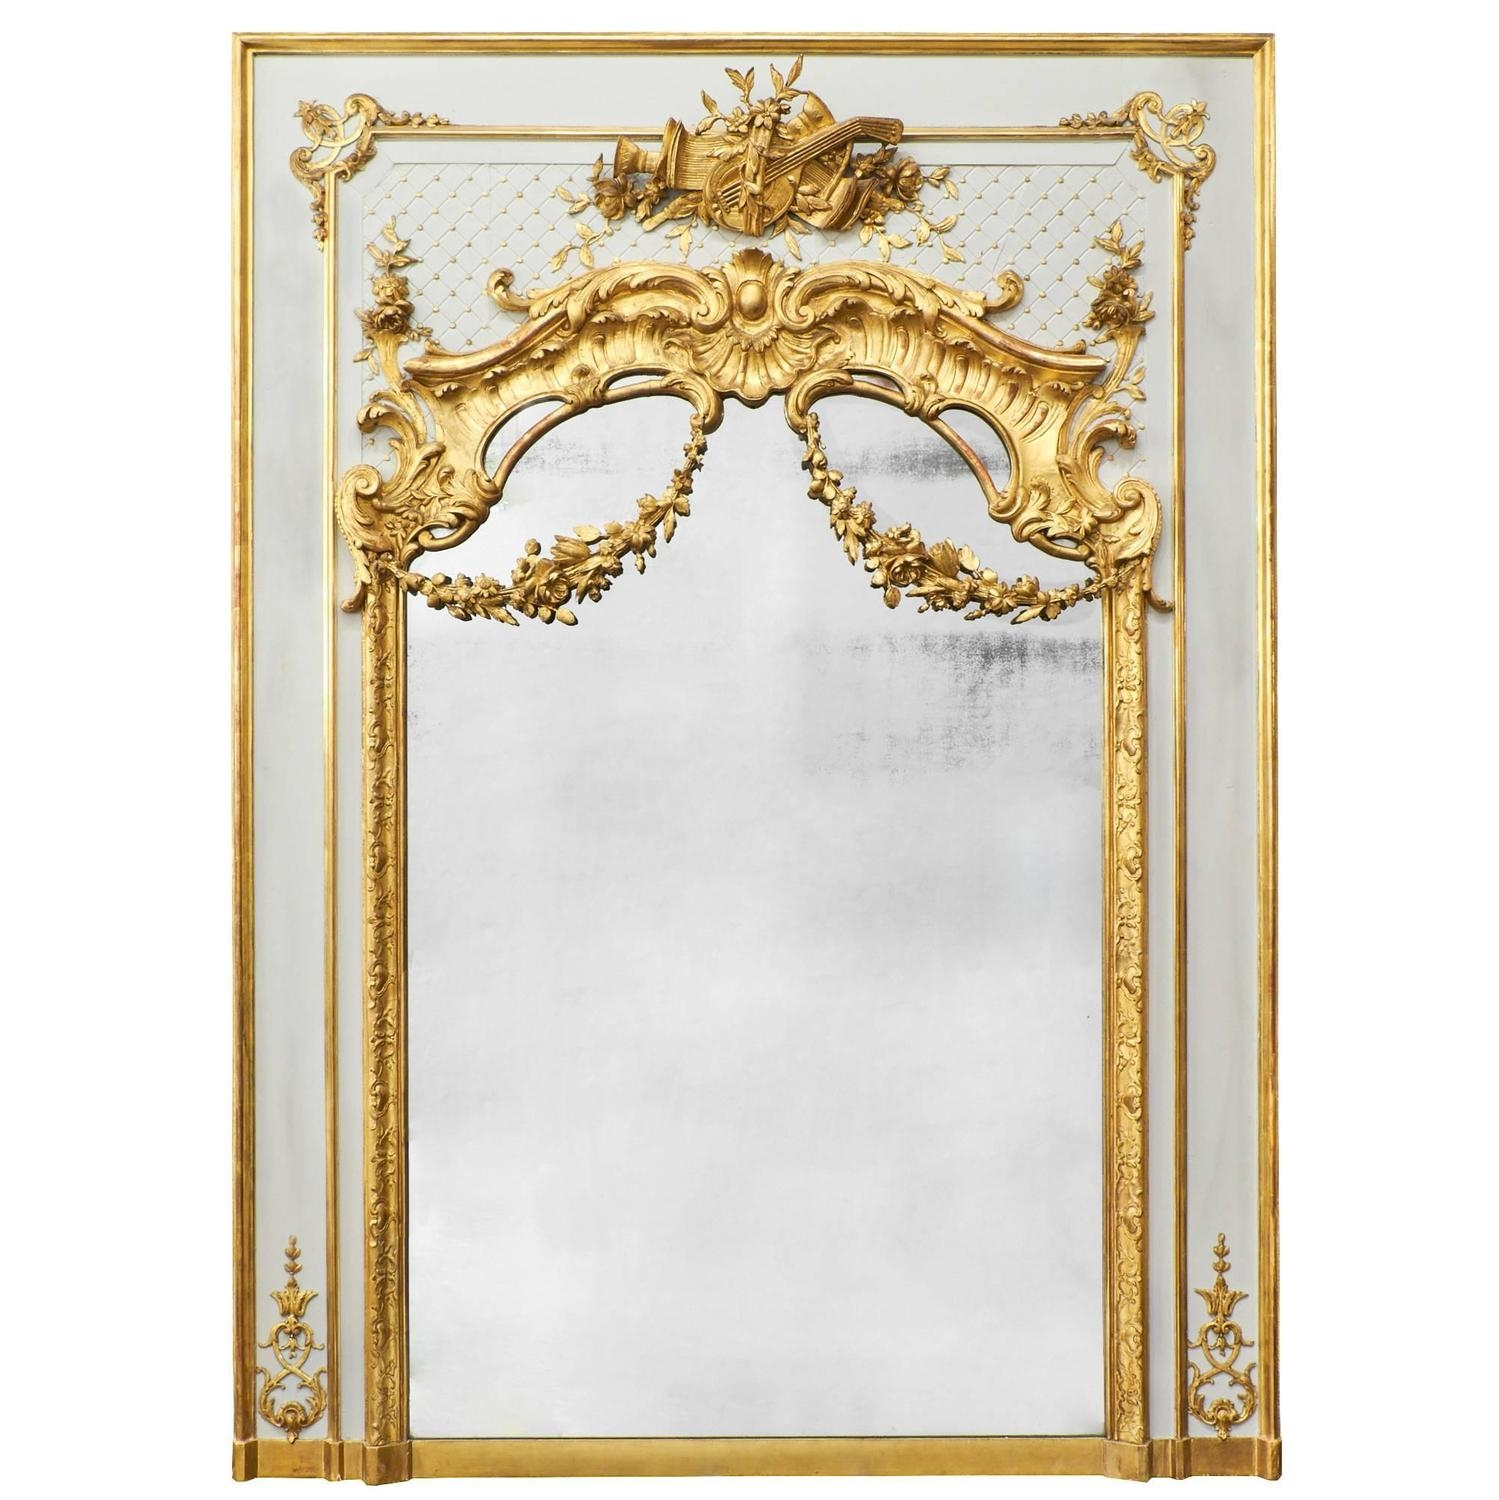 Antique French Louis Xvi Gold Leaf Trumeau For Sale At 1stdibs With Regard To French Gold Mirror (View 8 of 15)